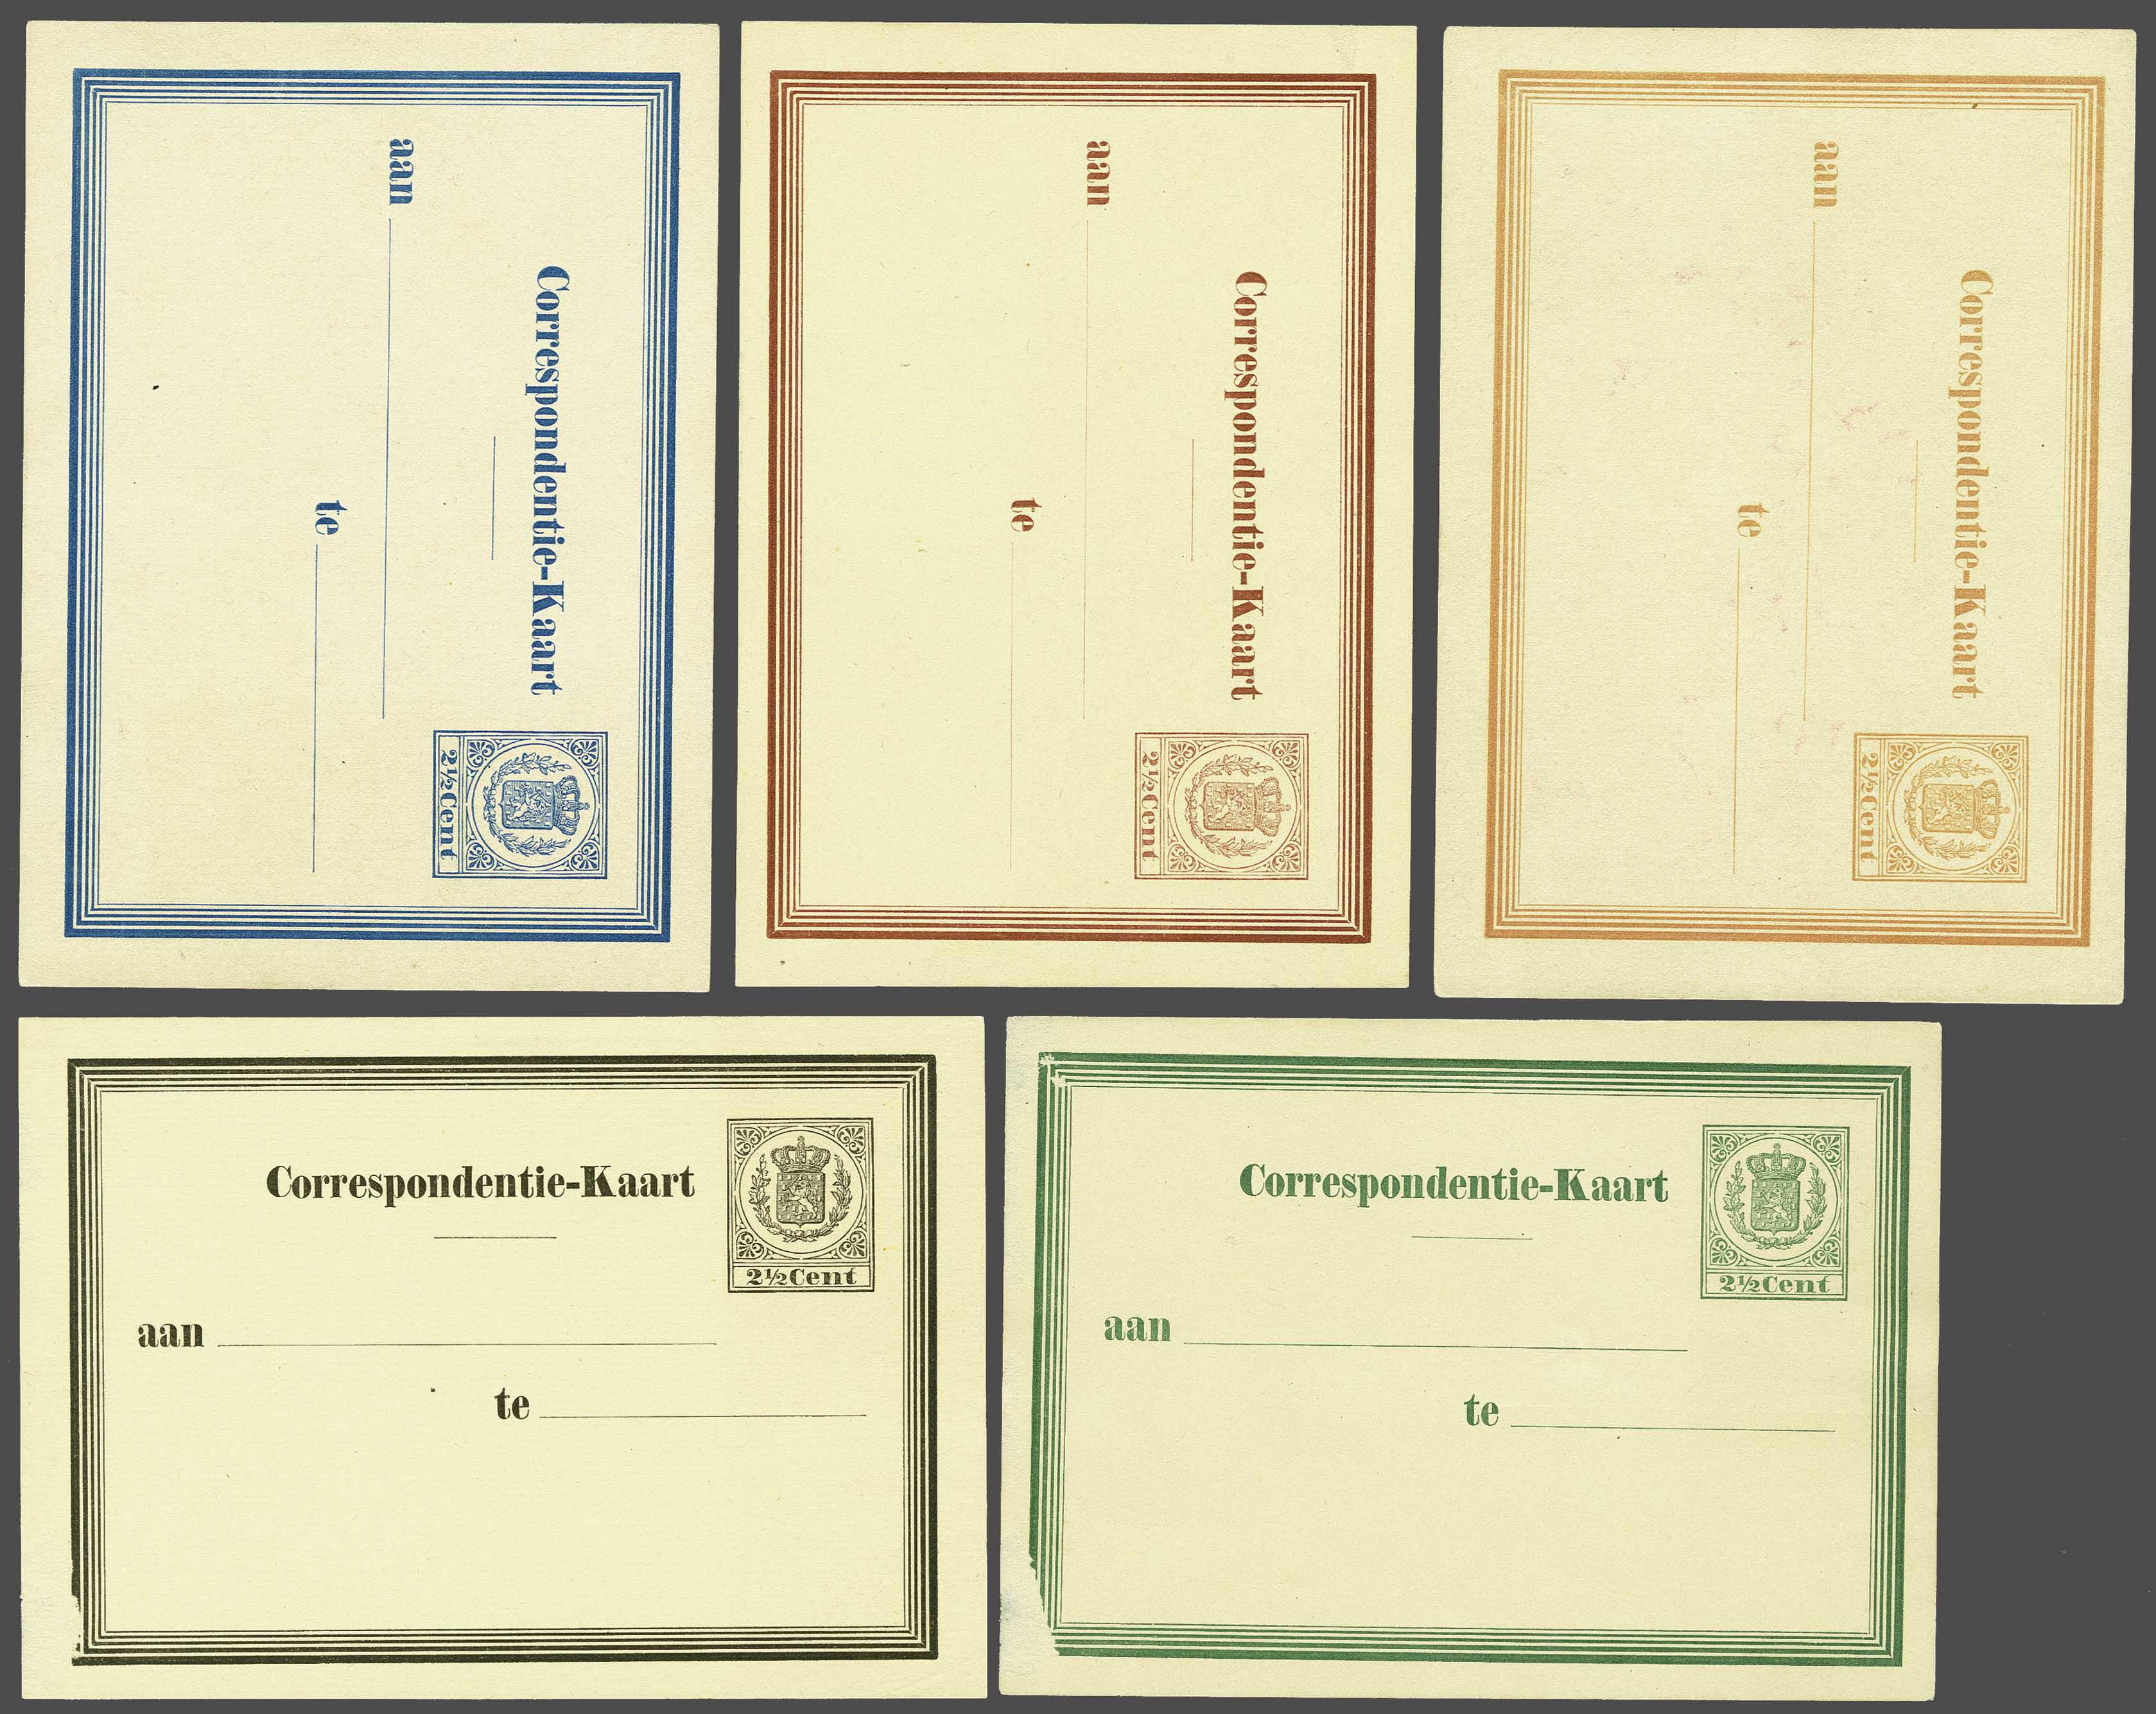 Lot 1826 - Netherlands and former colonies Netherlands Postal Stationery -  Corinphila Veilingen Auction 245-246 Day 3 - Netherlands and former colonies - Single lots, Collections and lots, Boxes and literature